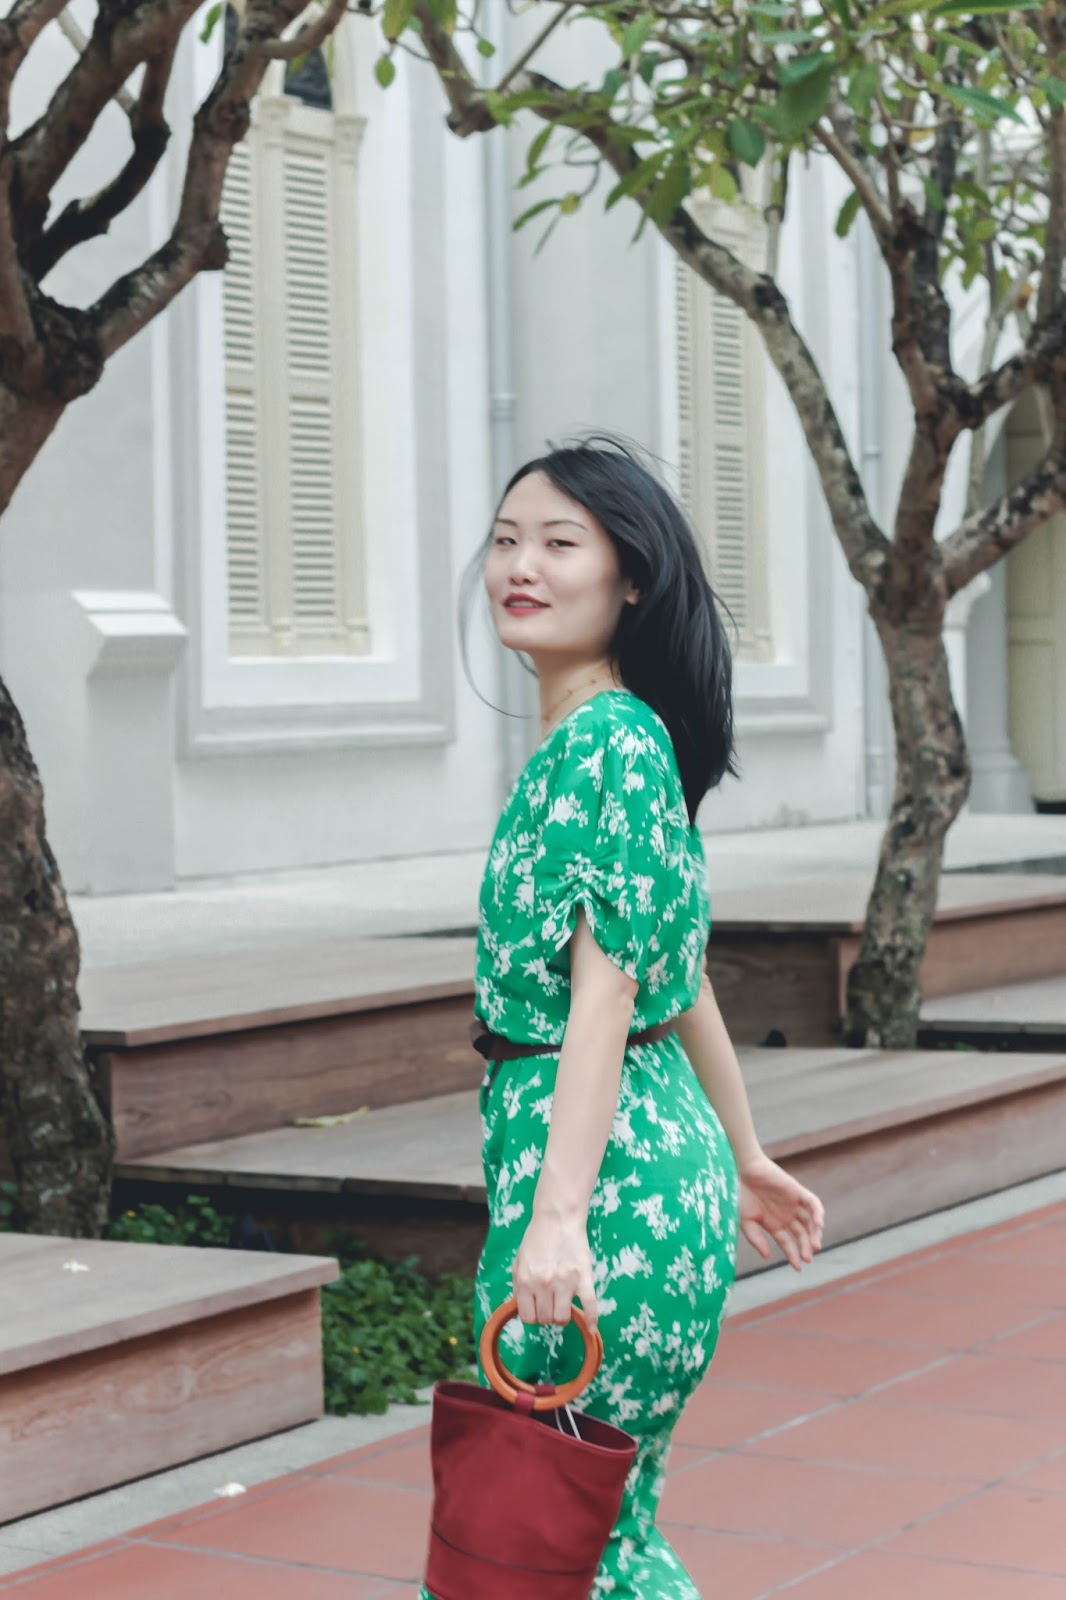 singapore blogger stylist look book street style fashion holiday st patrick day green photographer